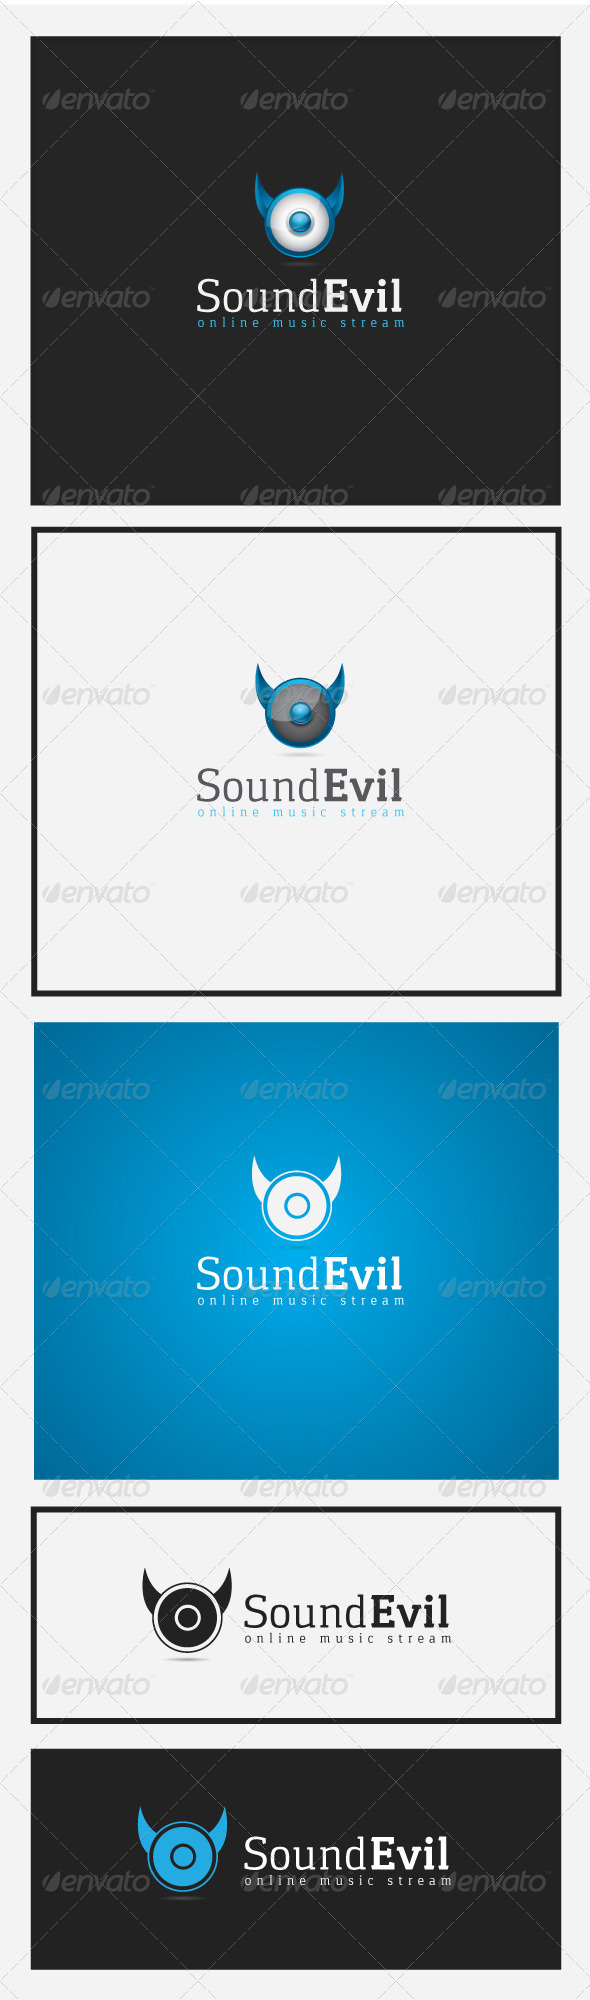 GraphicRiver Sound Evil Logo 8259738